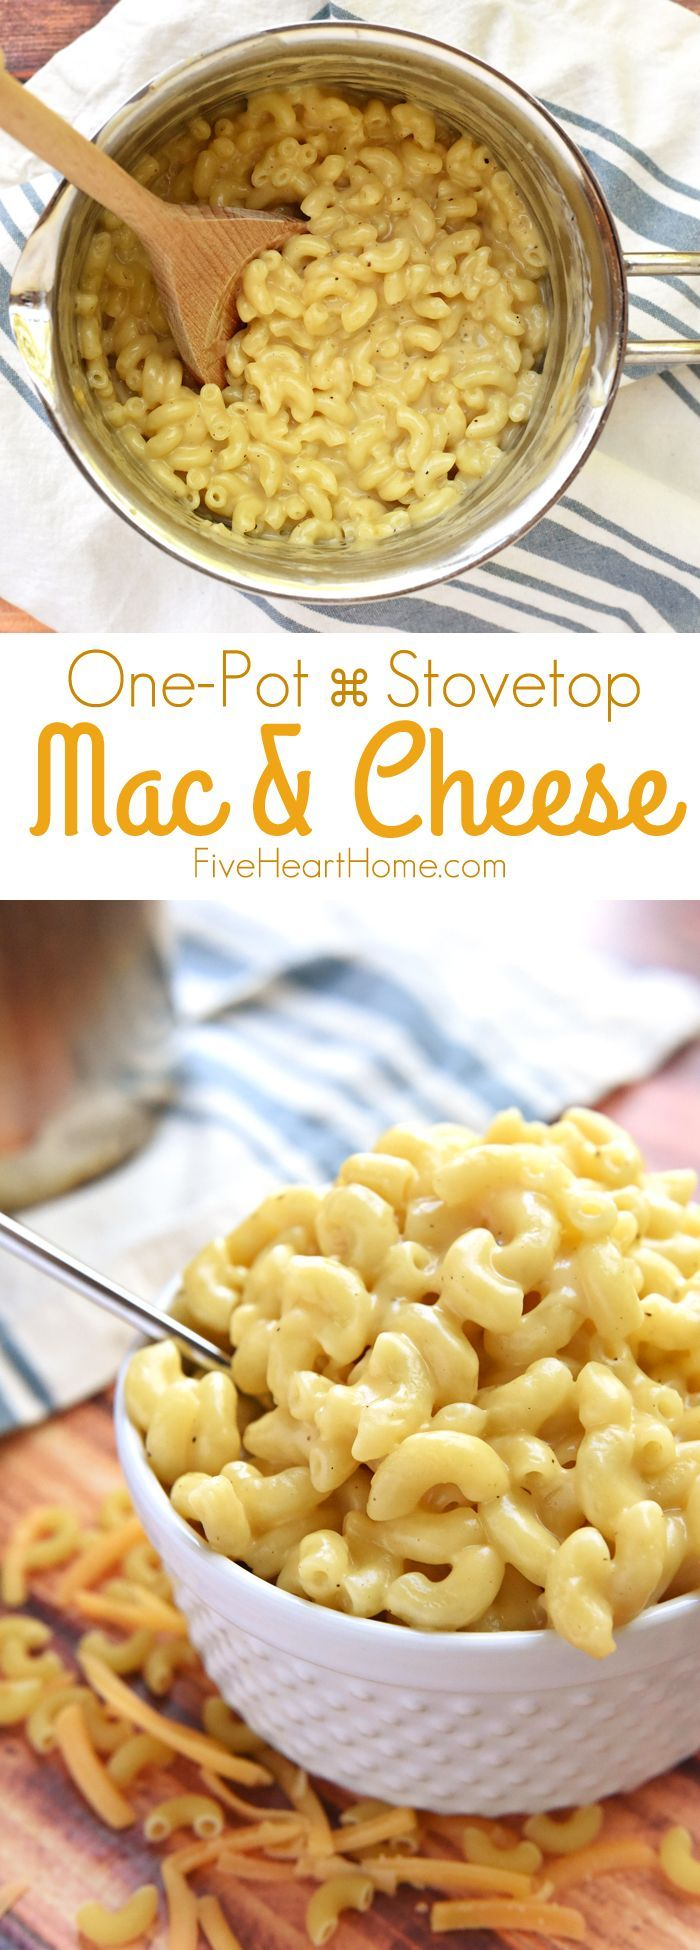 Homemade One-Pot Stovetop Macaroni and Cheese ~ creamy and made from scratch, this mac & cheese is as easy as one pot, a handful of ingredients, and ten minutes on the stove! |